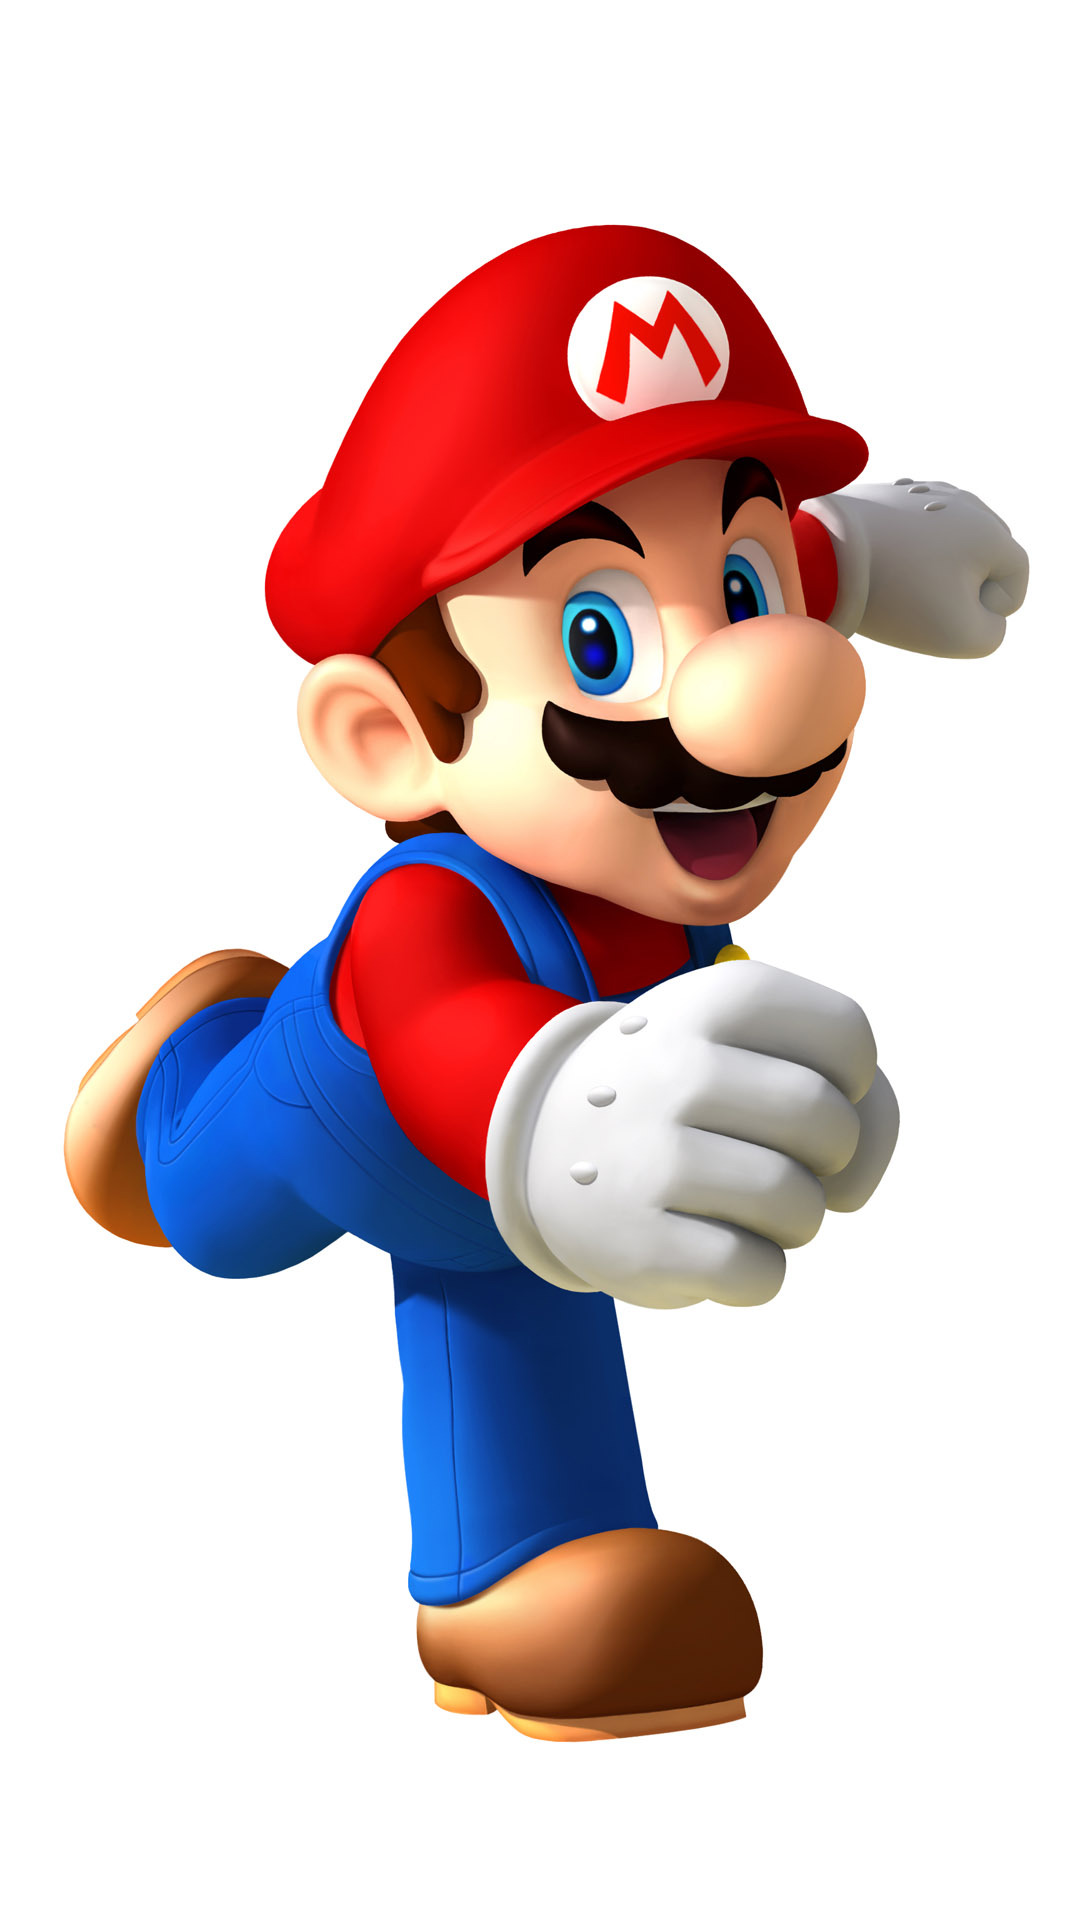 Baby Live Wallpaper Hd Super Mario Wallpapers For Iphone